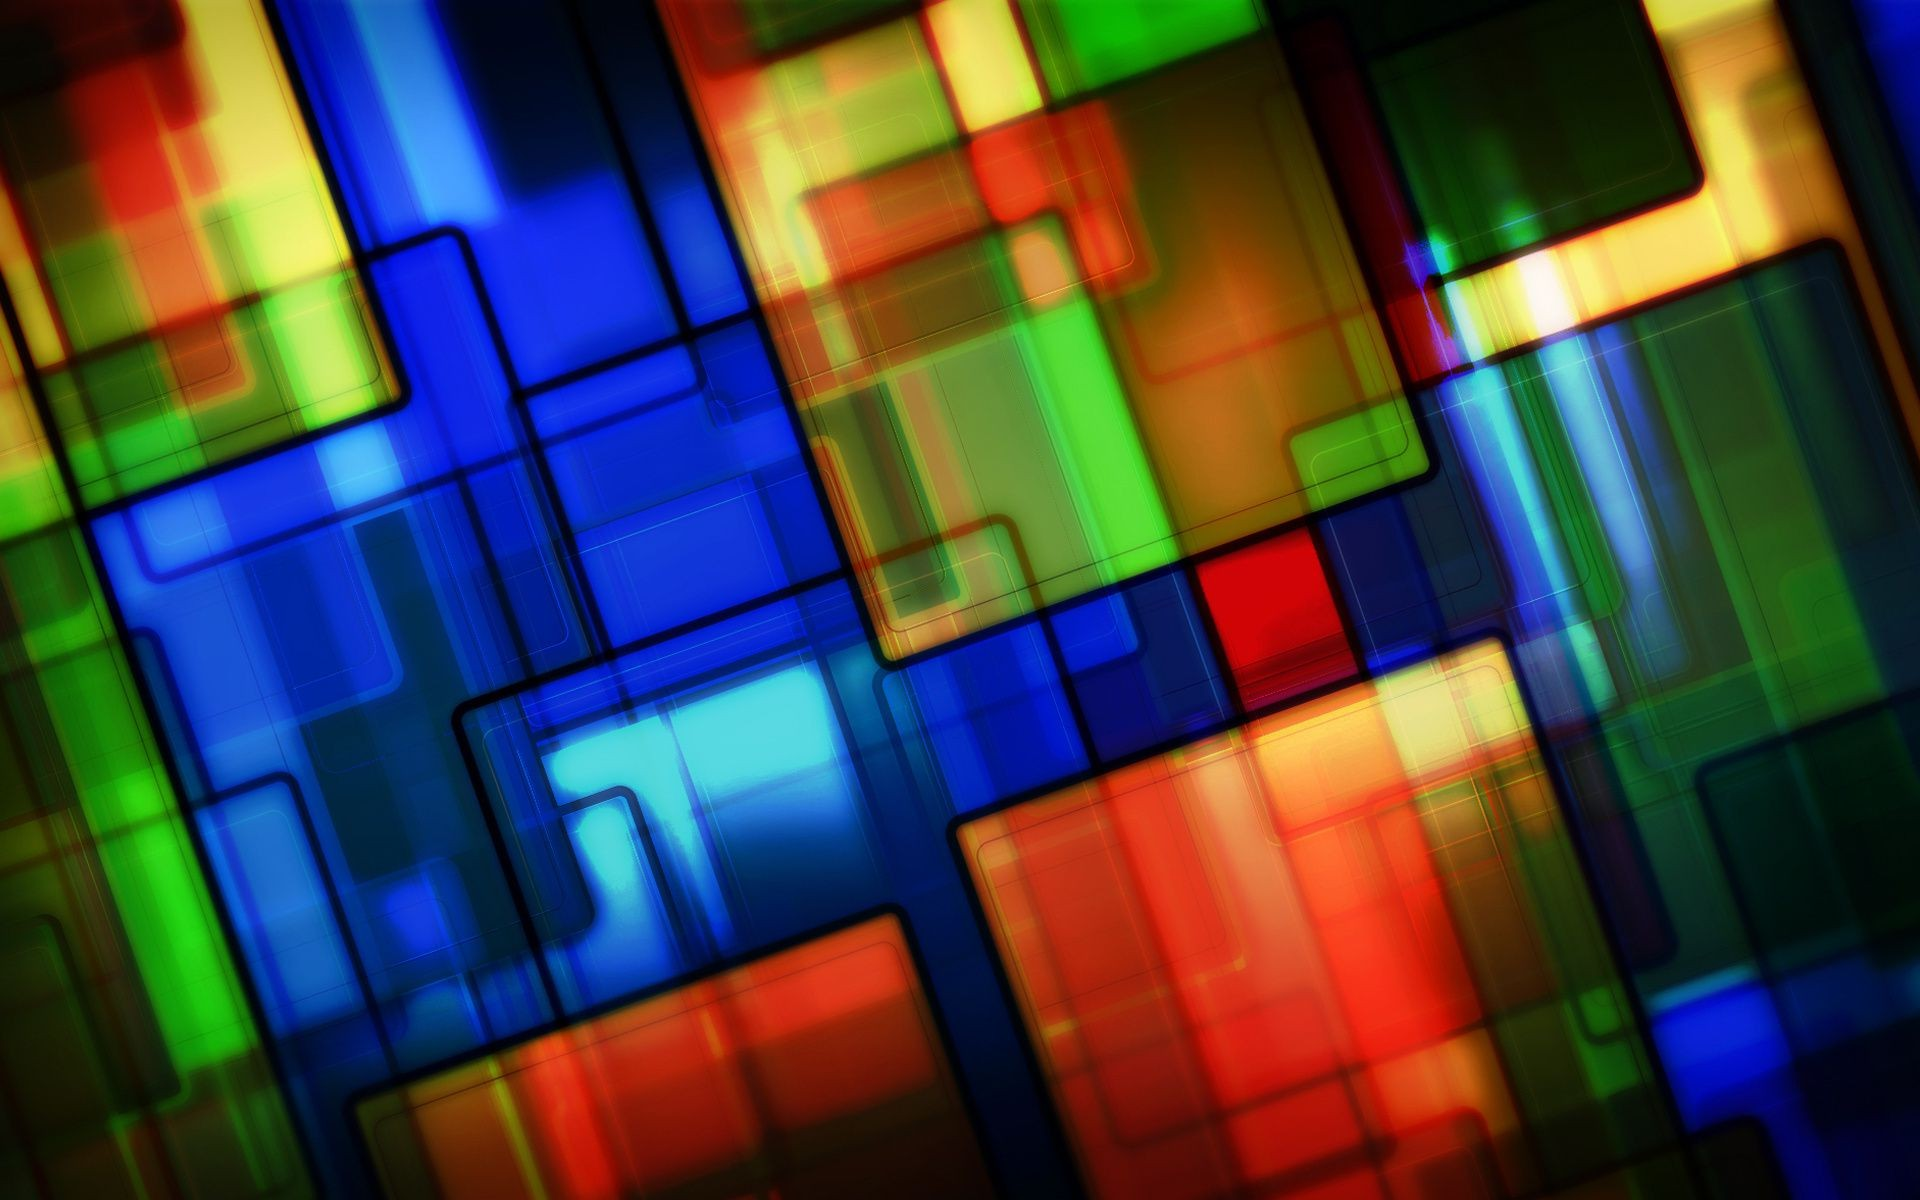 1920x1200 краски Абстракция abstraction patterns colors